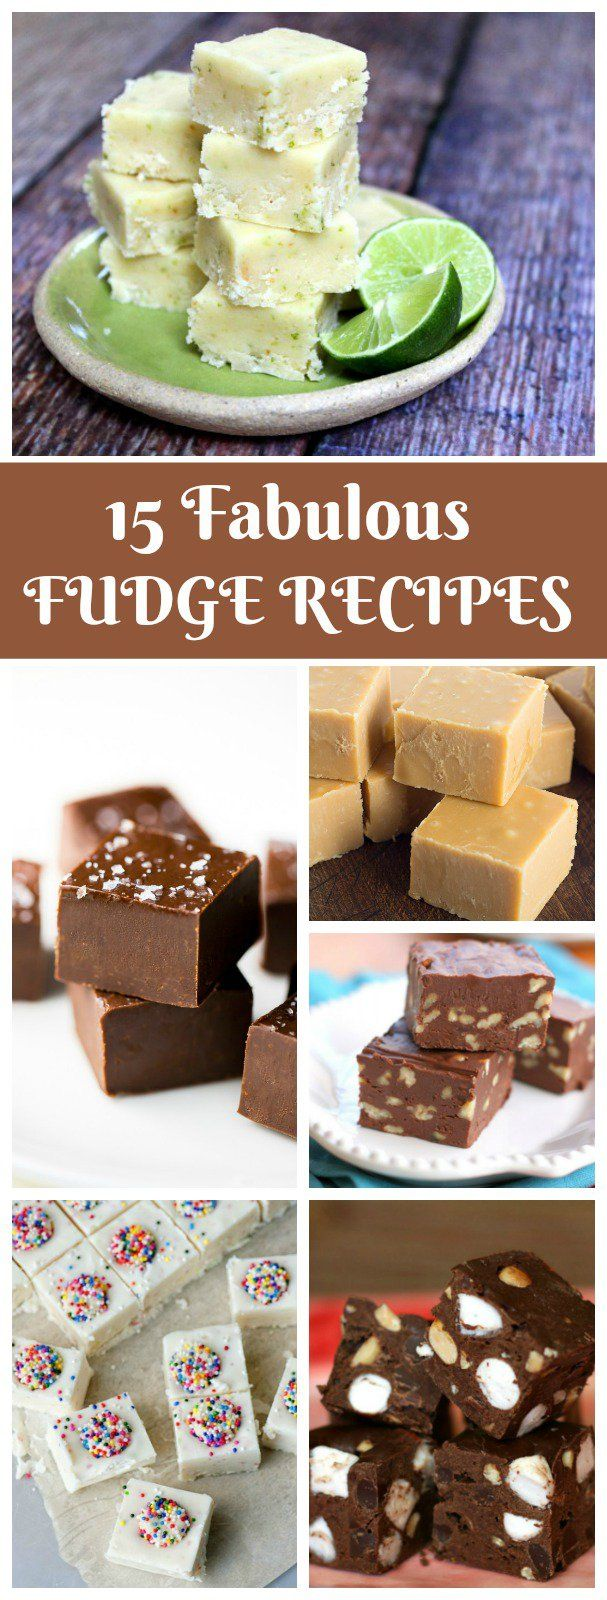 15 Fudge Recipes:  Classic Fudge, Sees Copycat Fudge, S'Mores Fudge, Key Lime Fudge, Snickerdoodle Fudge and more!